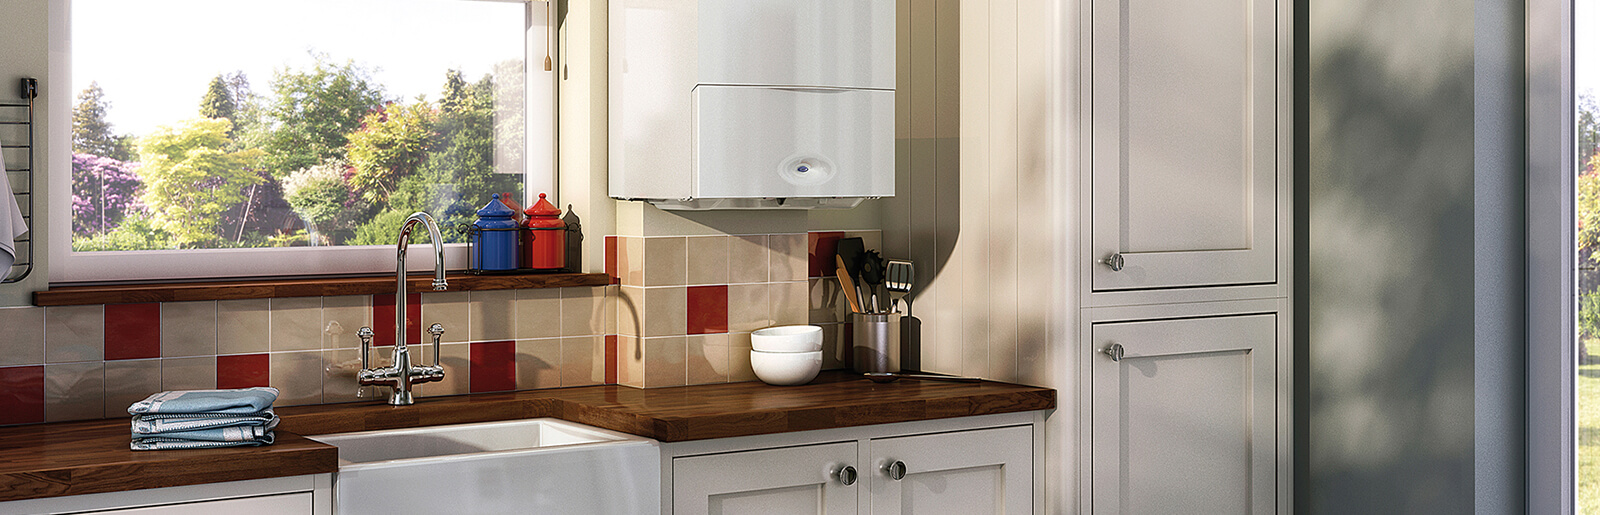 boiler replacement wakefield